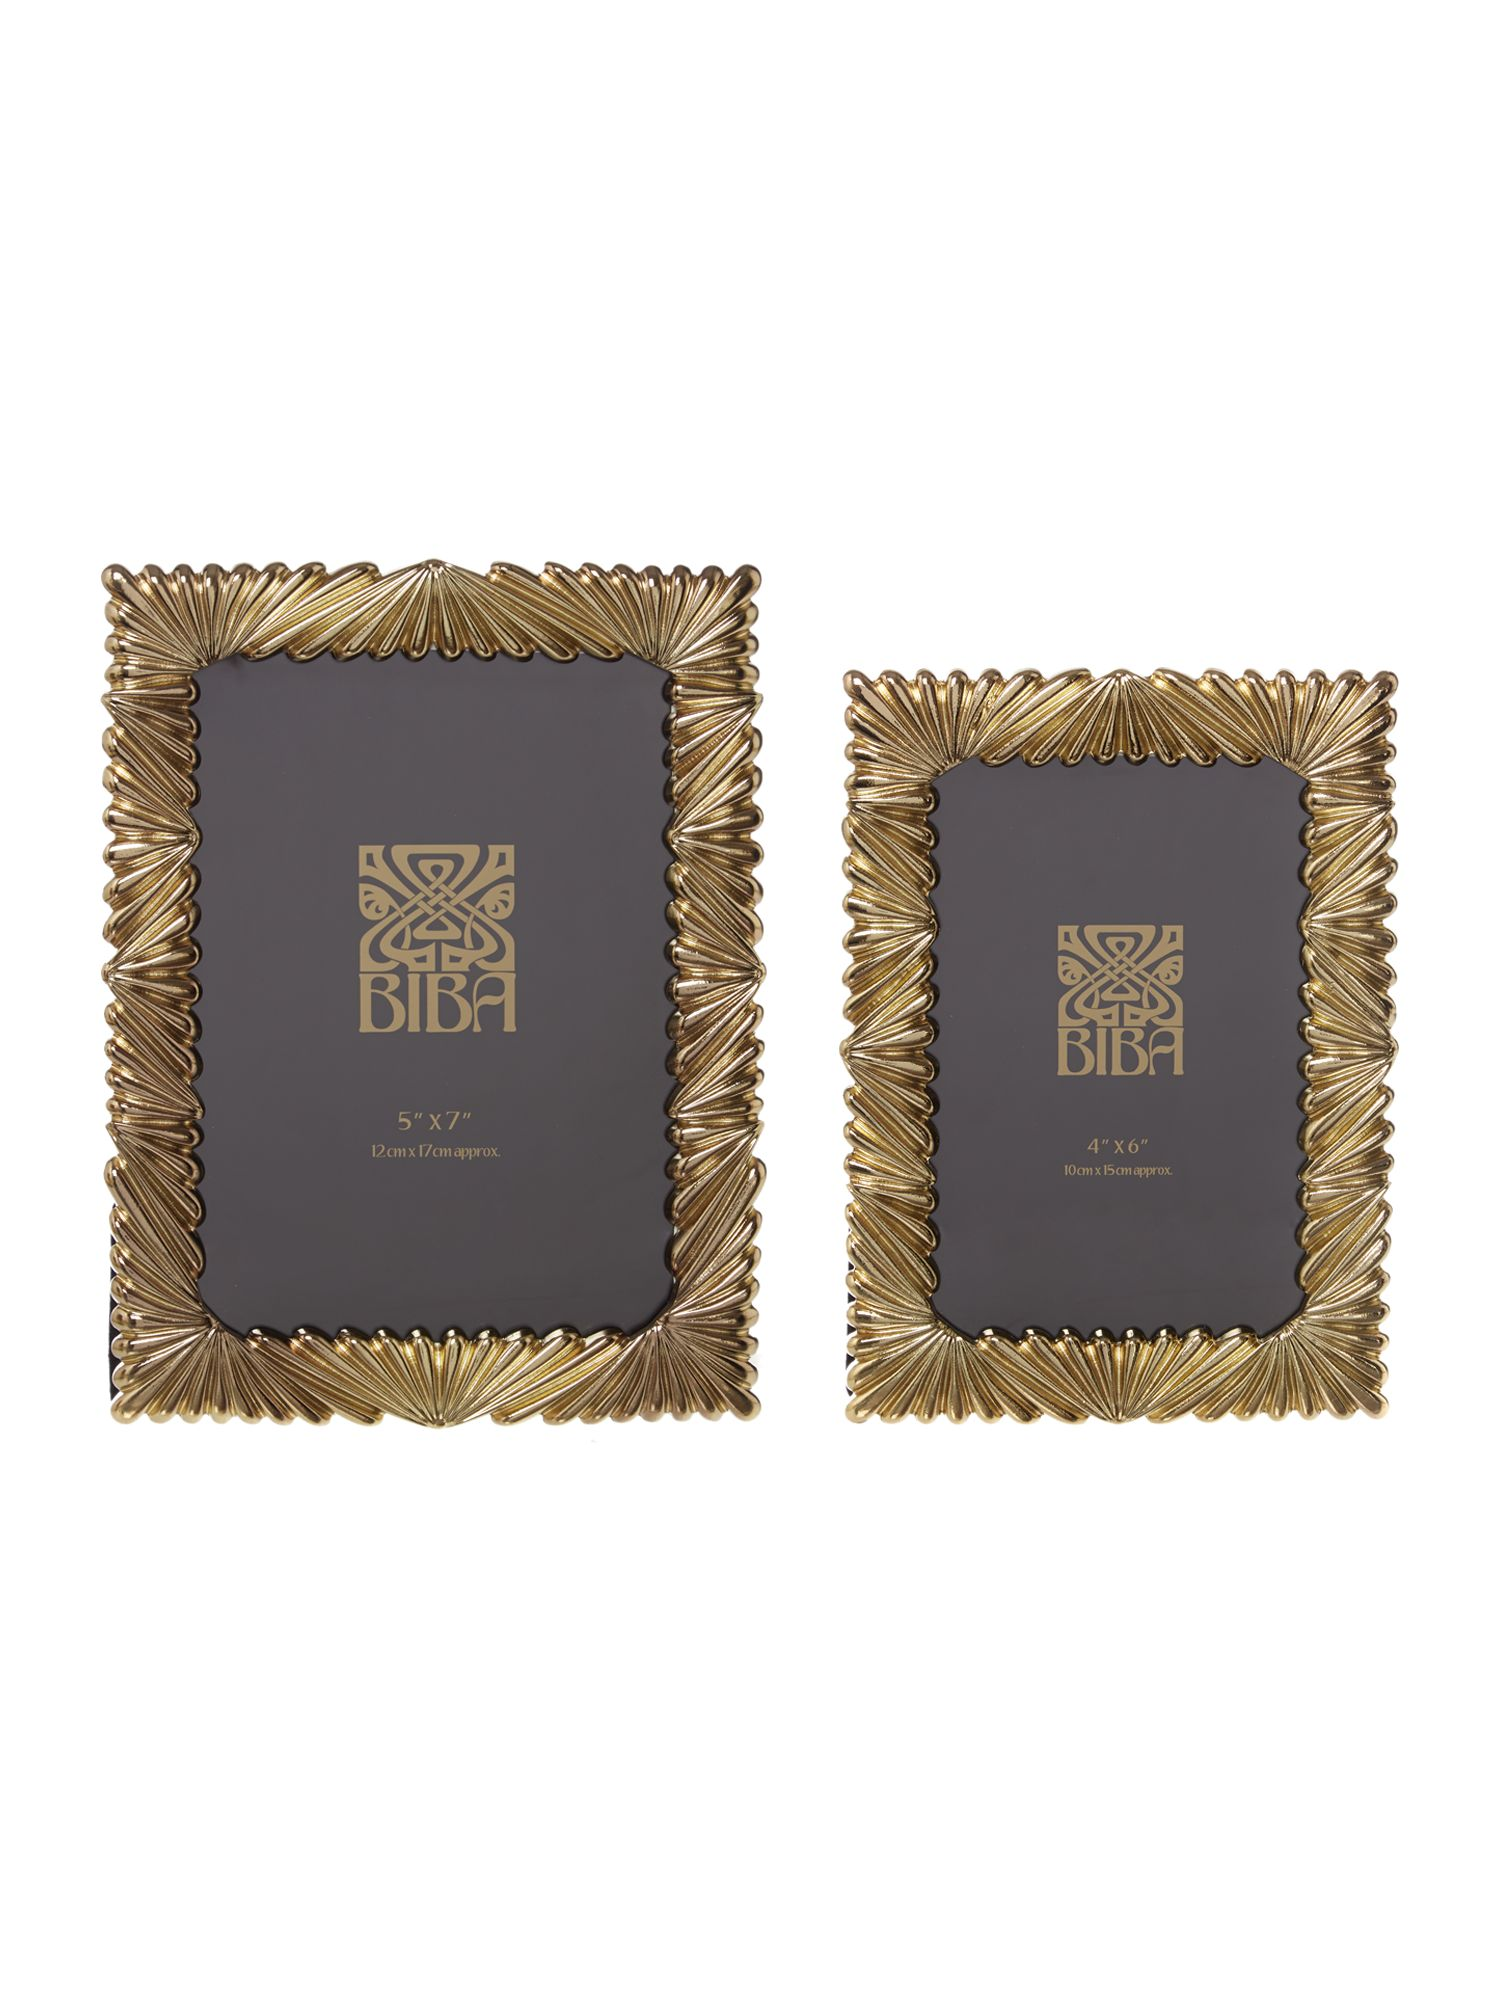 Biba gold fan effect photo frames